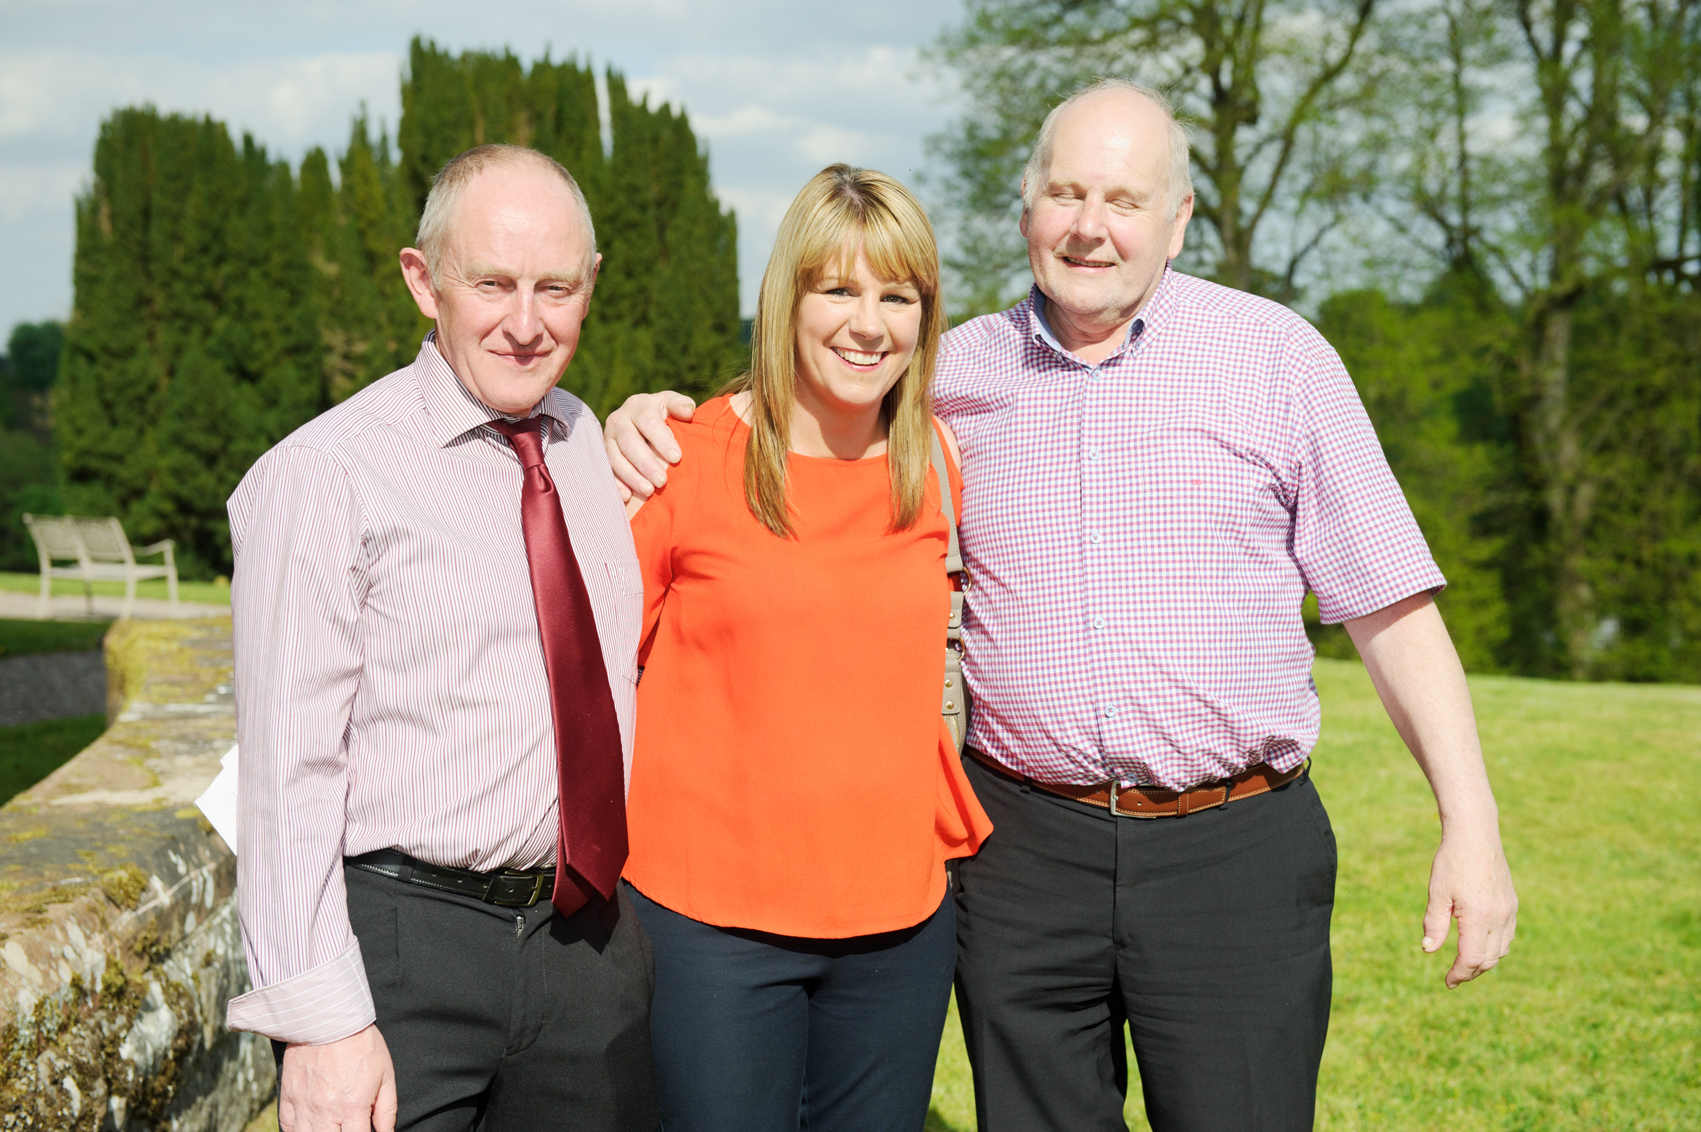 Pictured at the victorian tea-party at Castle Leslie was (L-R) Seamus McElroy, Lorna Connolly and Cecil Clarke. ©Rory Geary/The Northern Standard